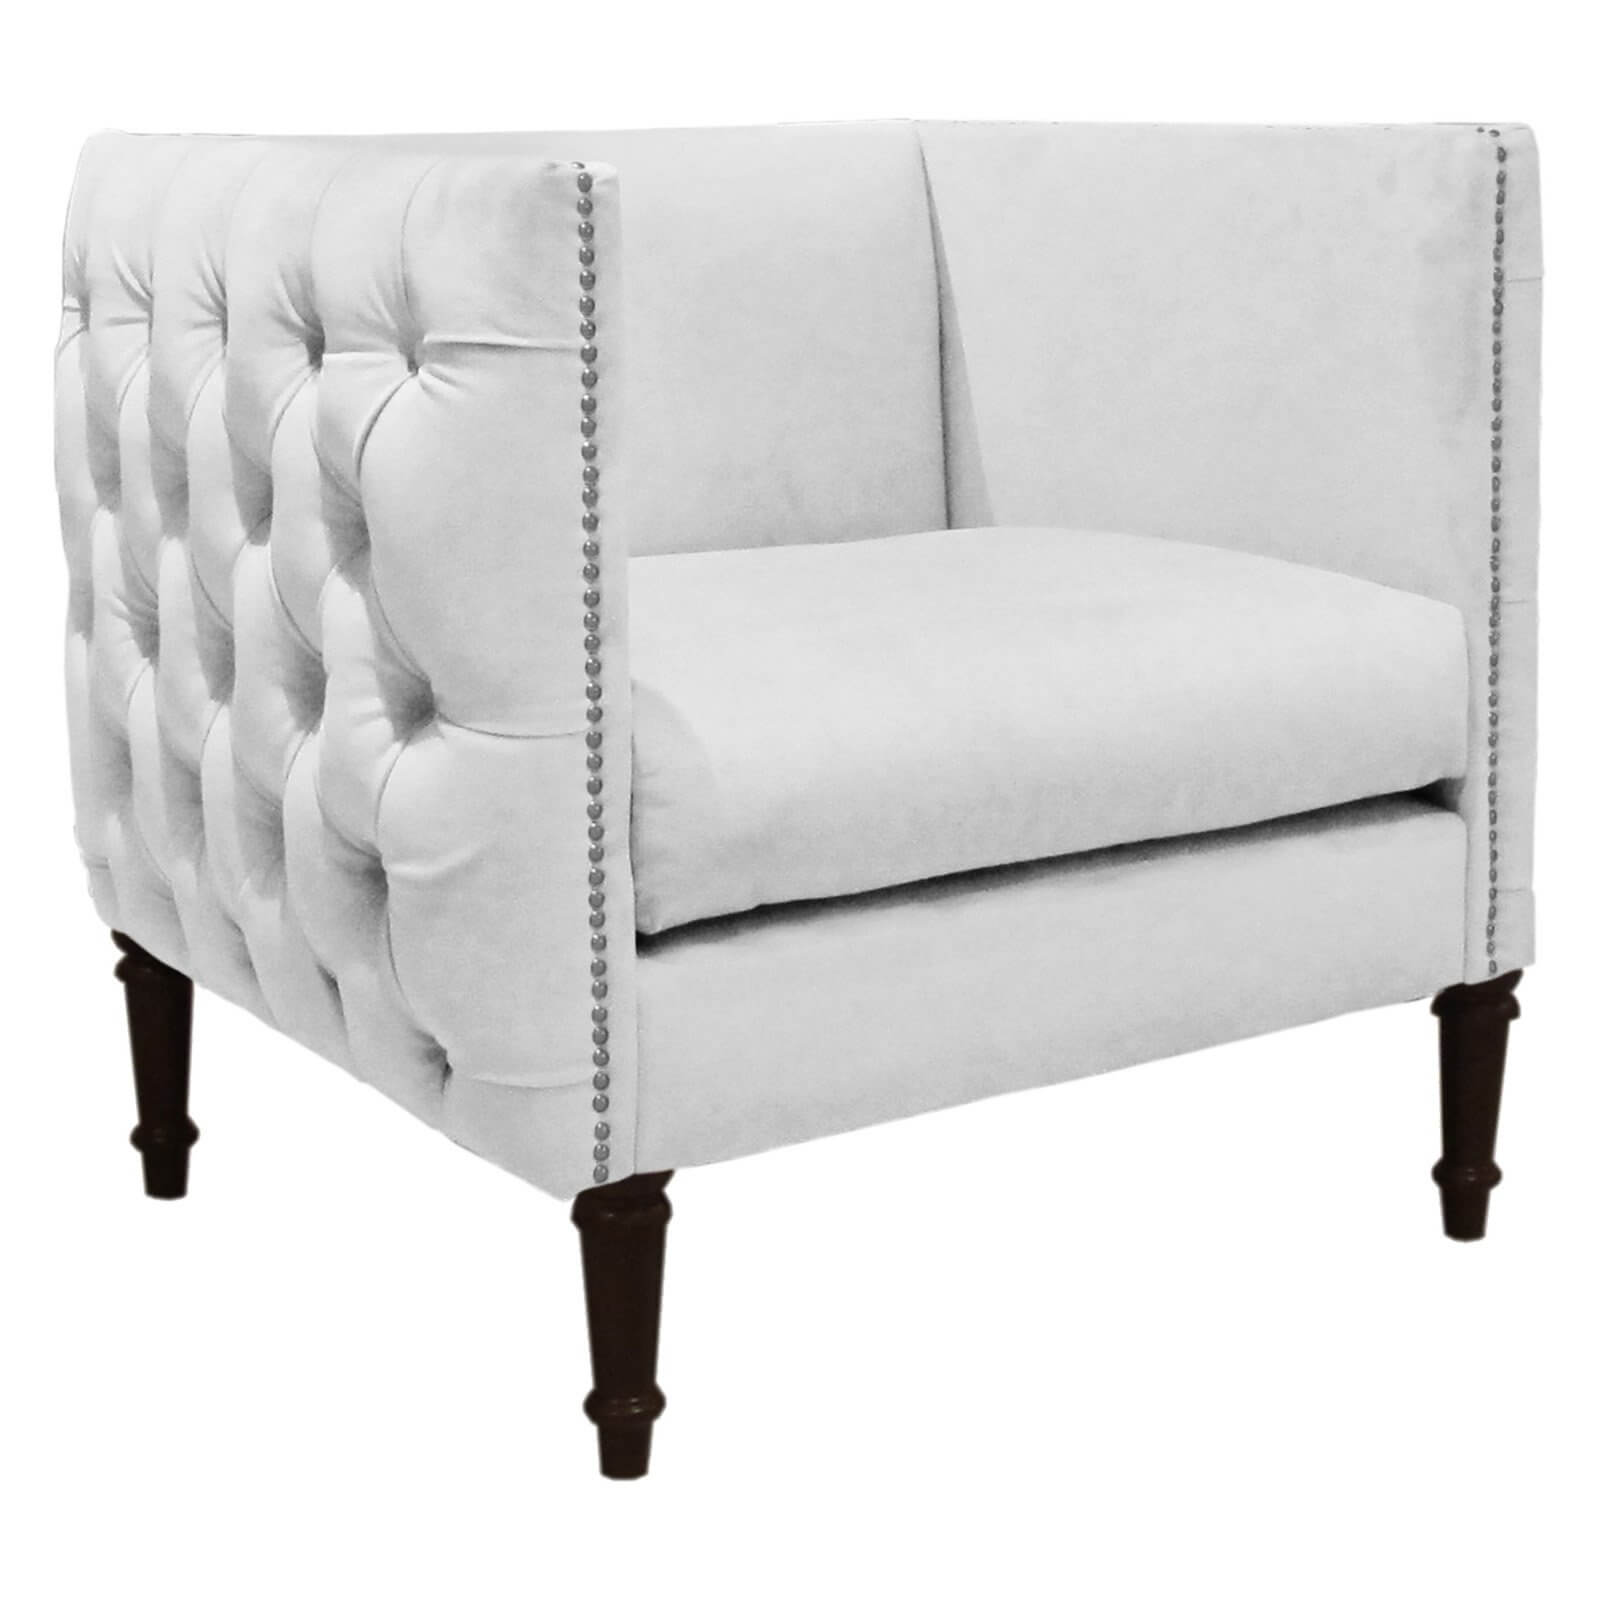 Skyline Furniture brings us this wood construction accent chair with velvet fabric upholstery featuring button tufting and nail head trim, with thick foam padding for comfort.